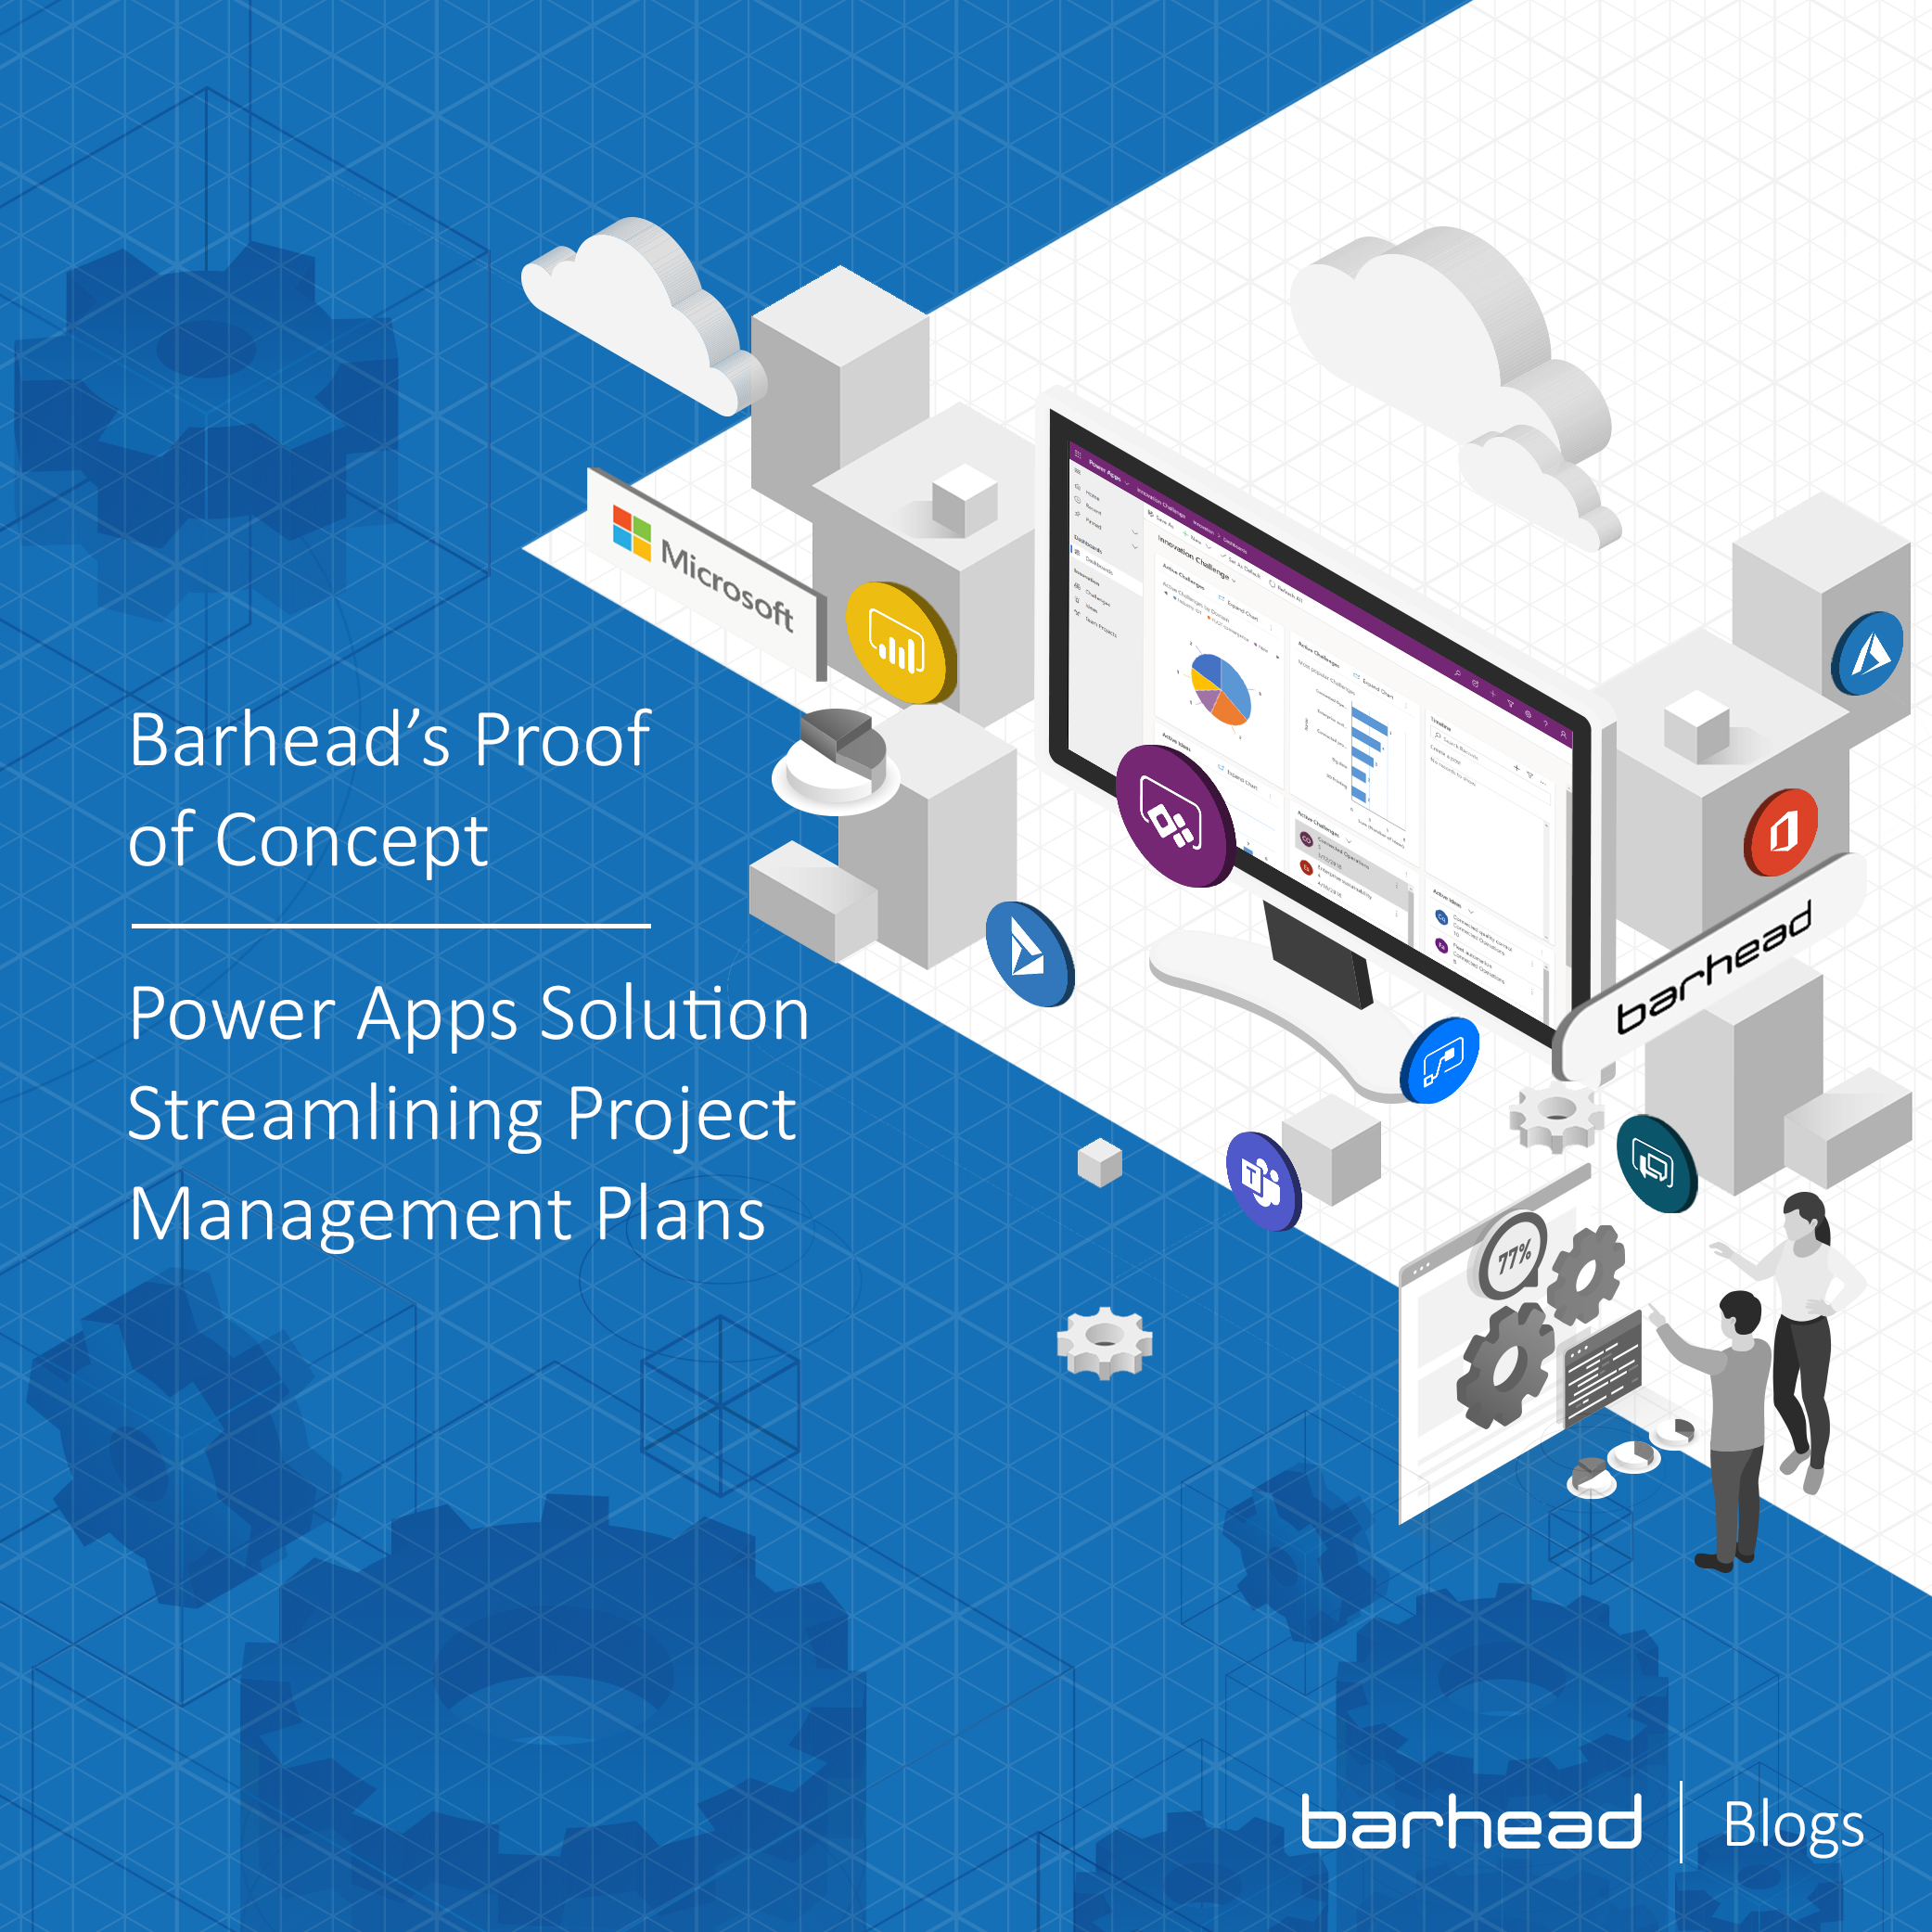 Barhead's Proof of Concept: Power Apps Solution Streamlining Project Management Plans